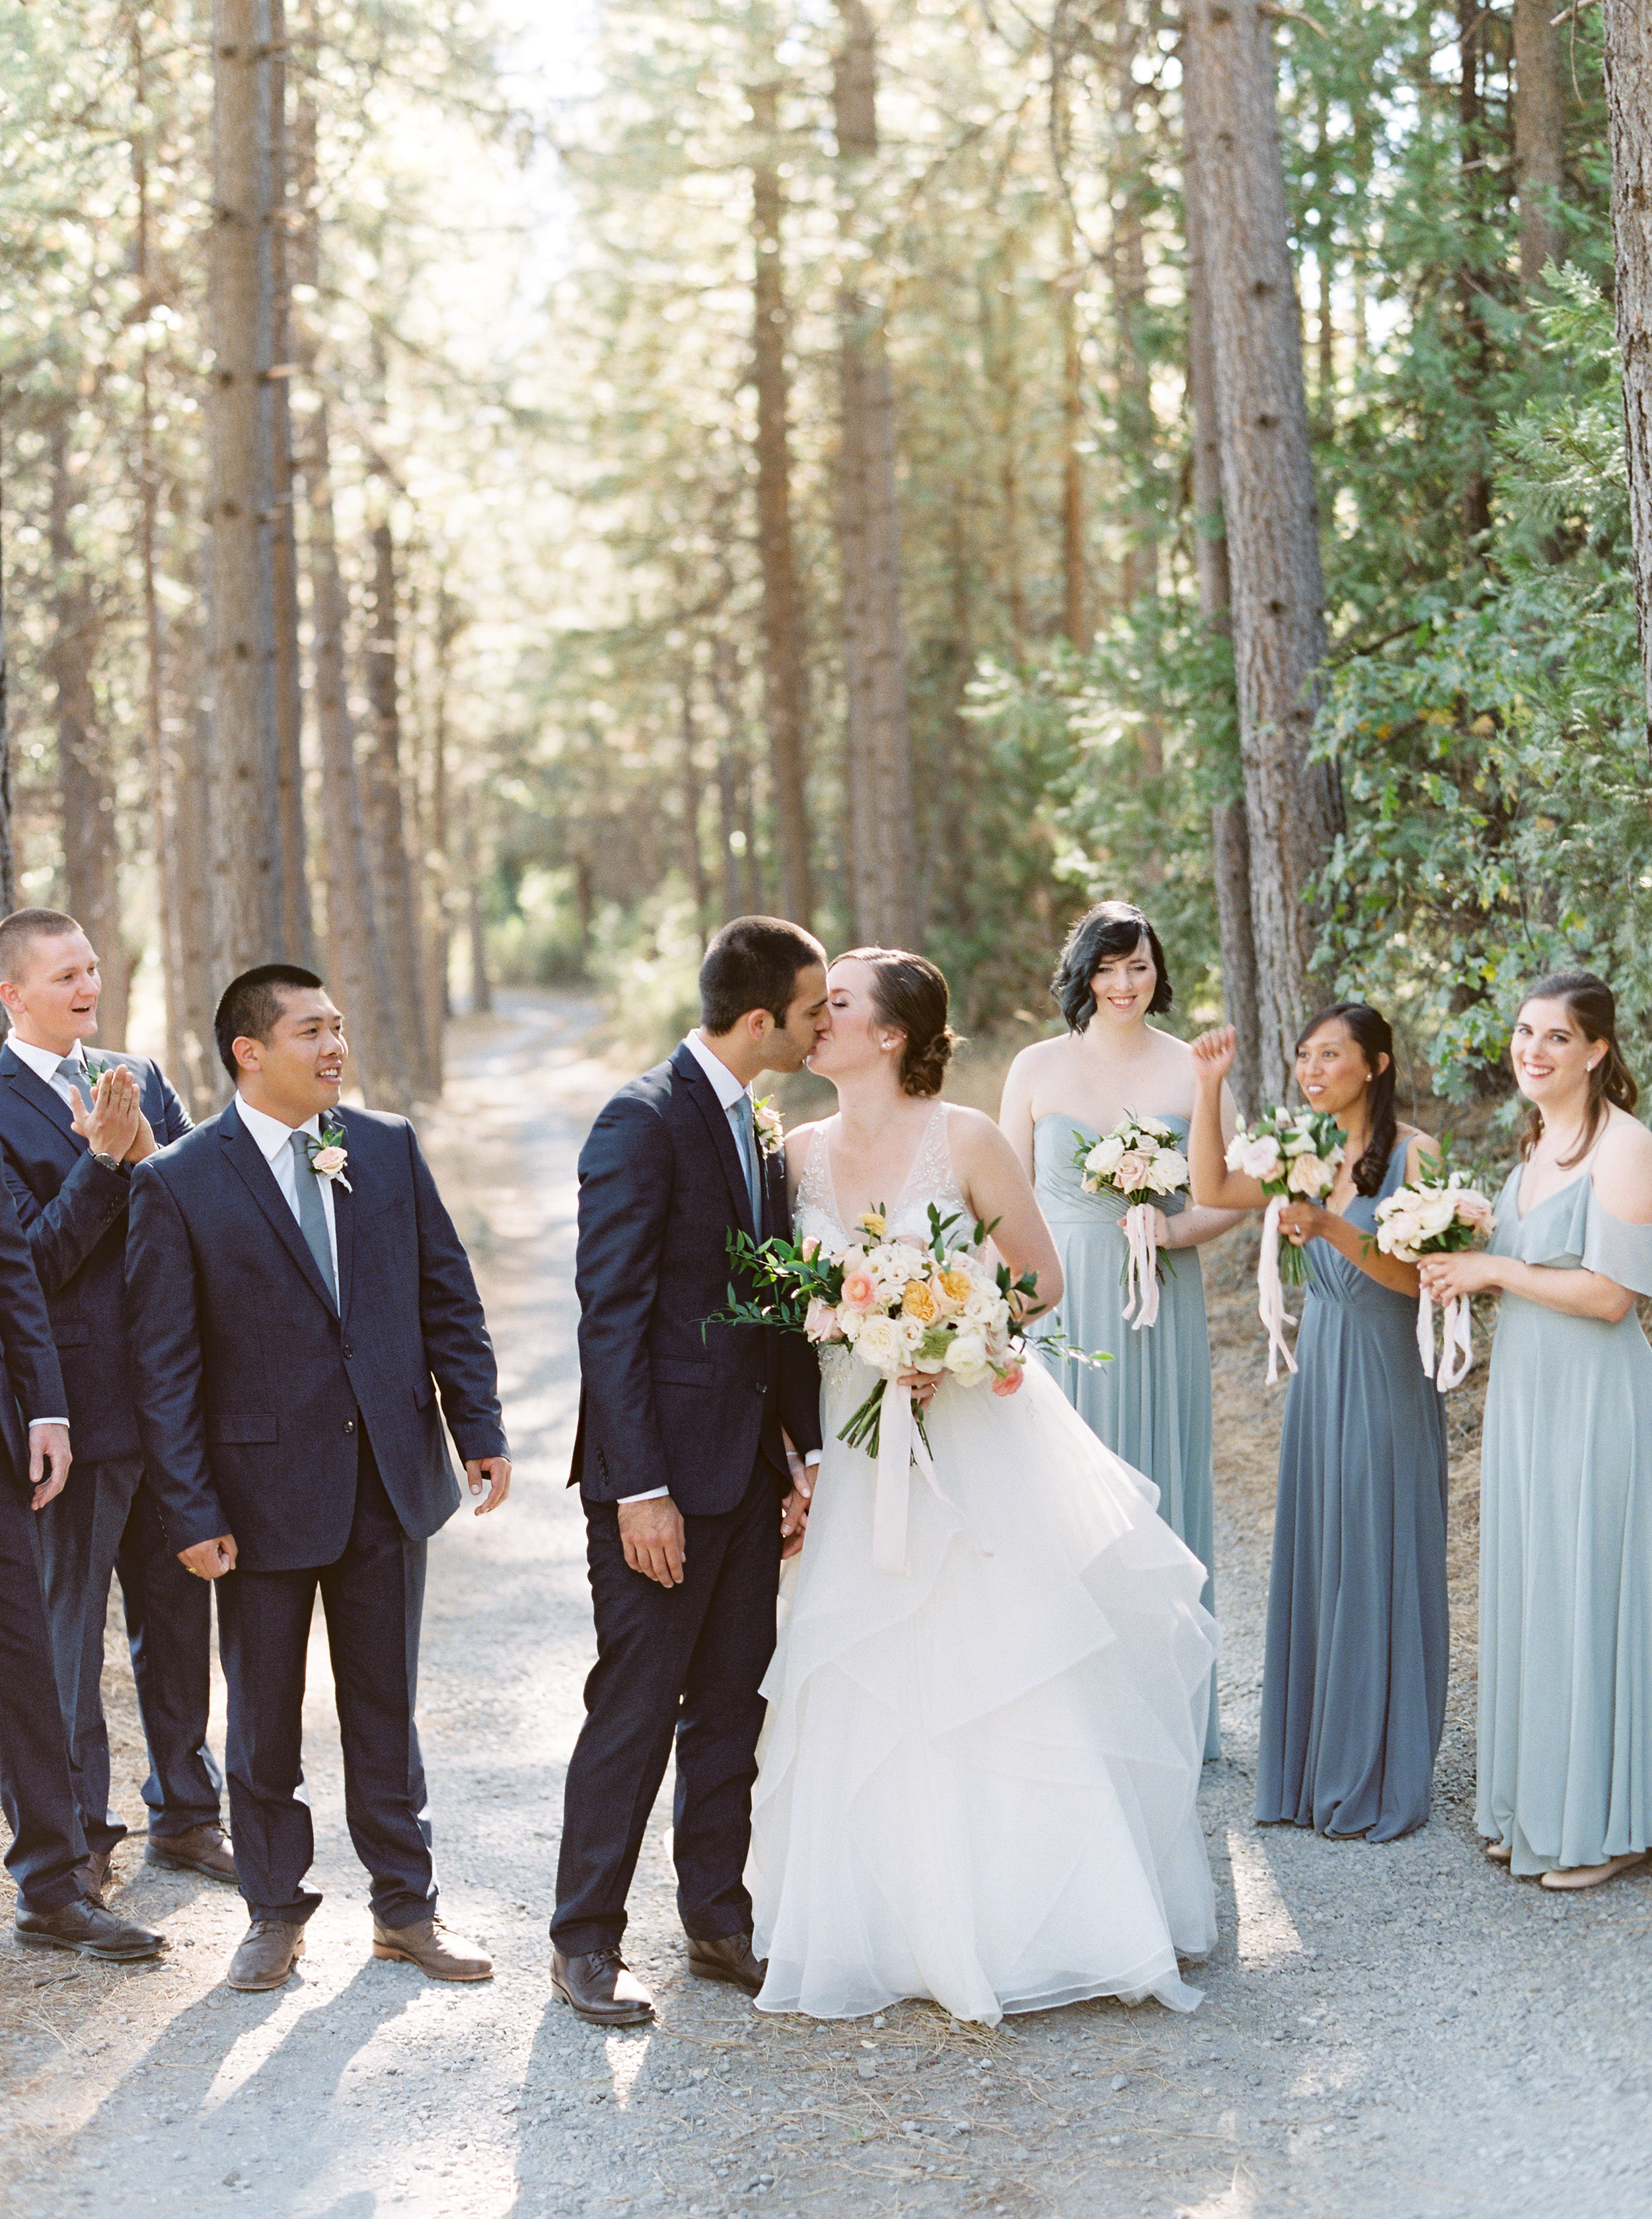 Forest-house-lodge-wedding-foresthill-california-56.jpg